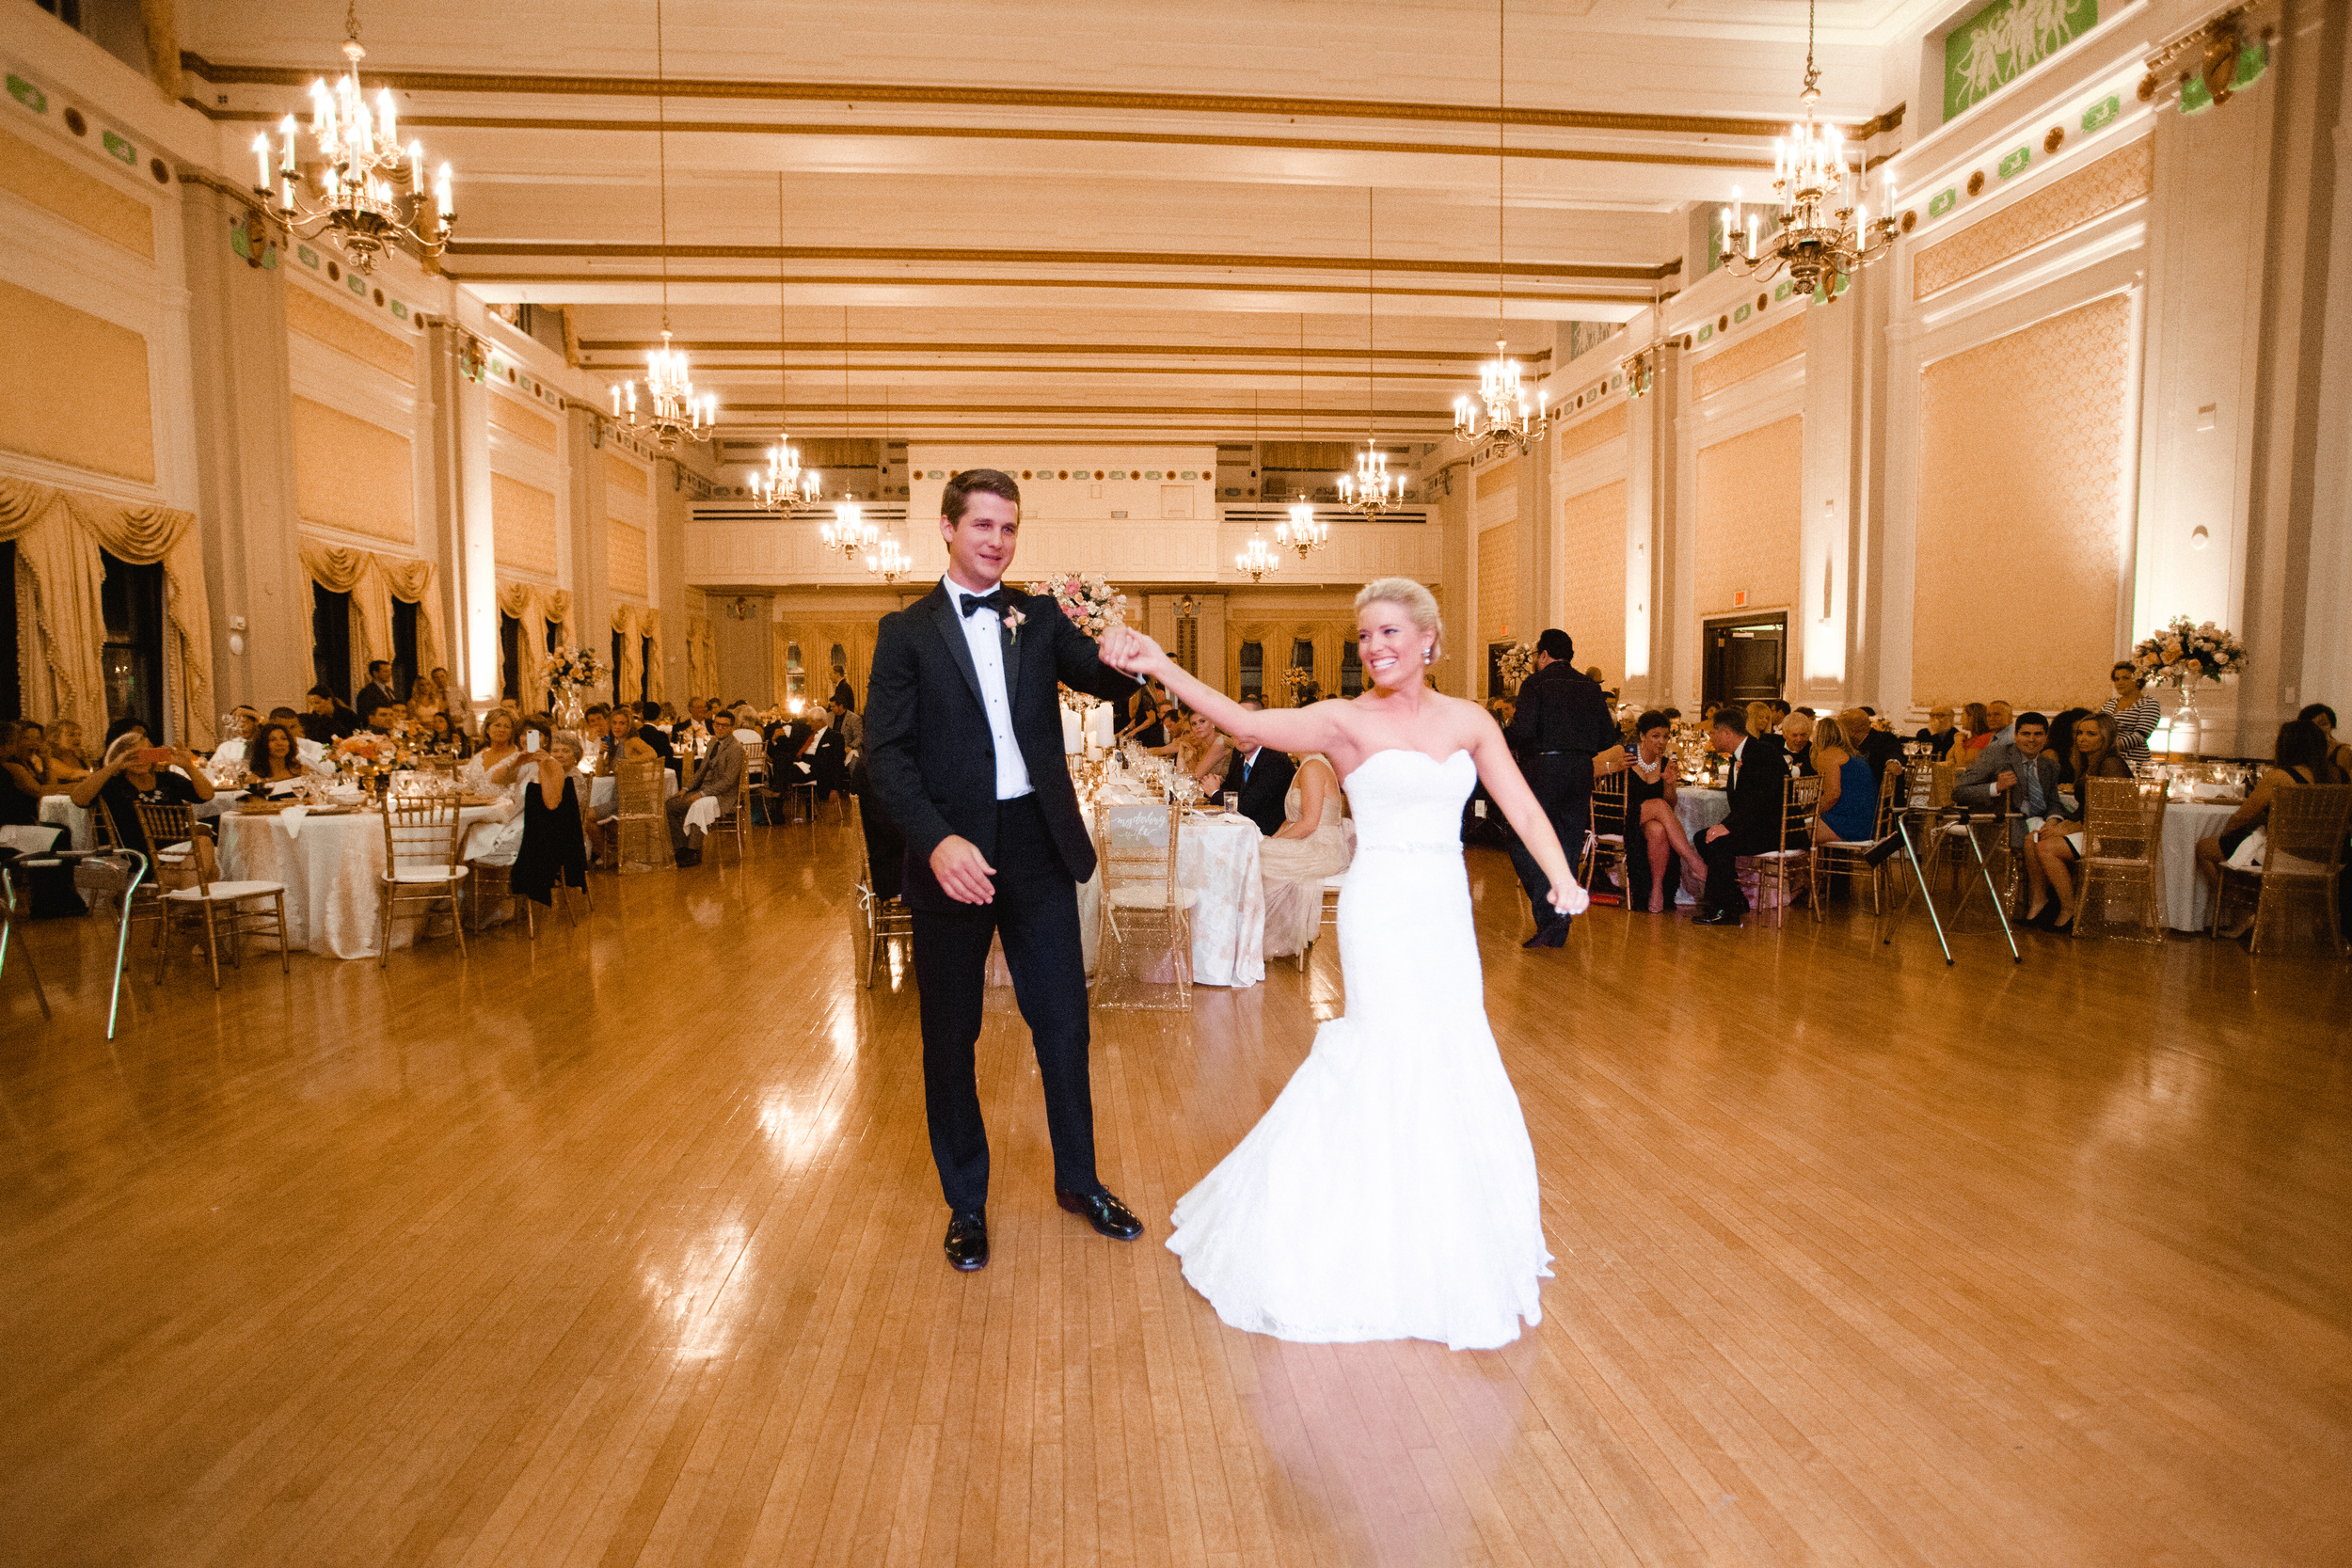 ChelseaMike_Wedding_AmyCampbellPhotography_0781.jpg